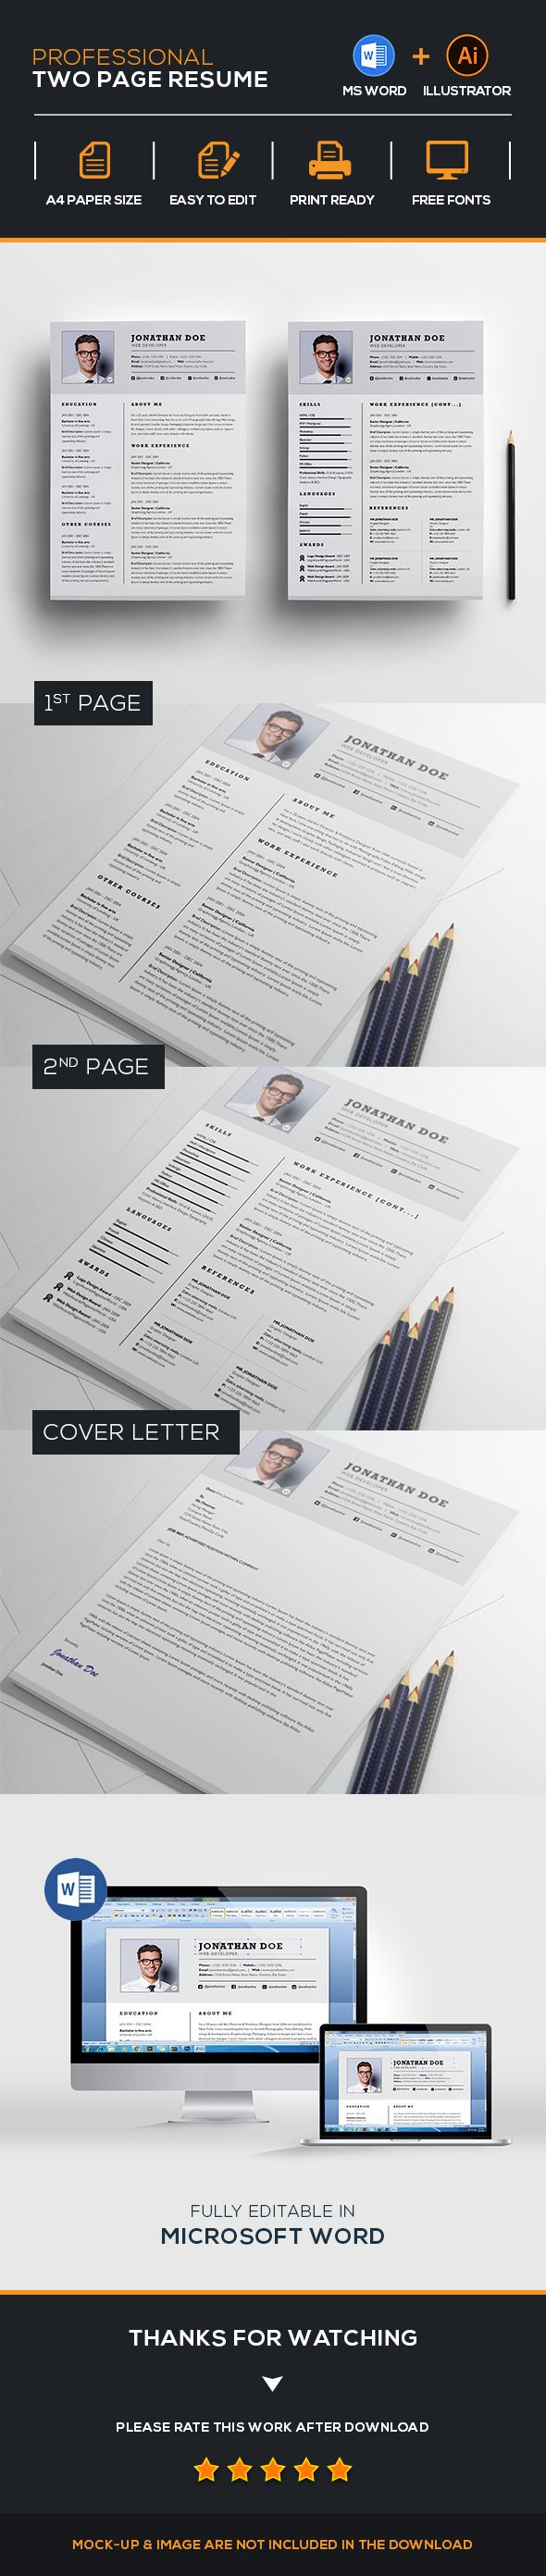 Professional Two Page Resume Set. Cv TemplateResume TemplatesProfessional  ...